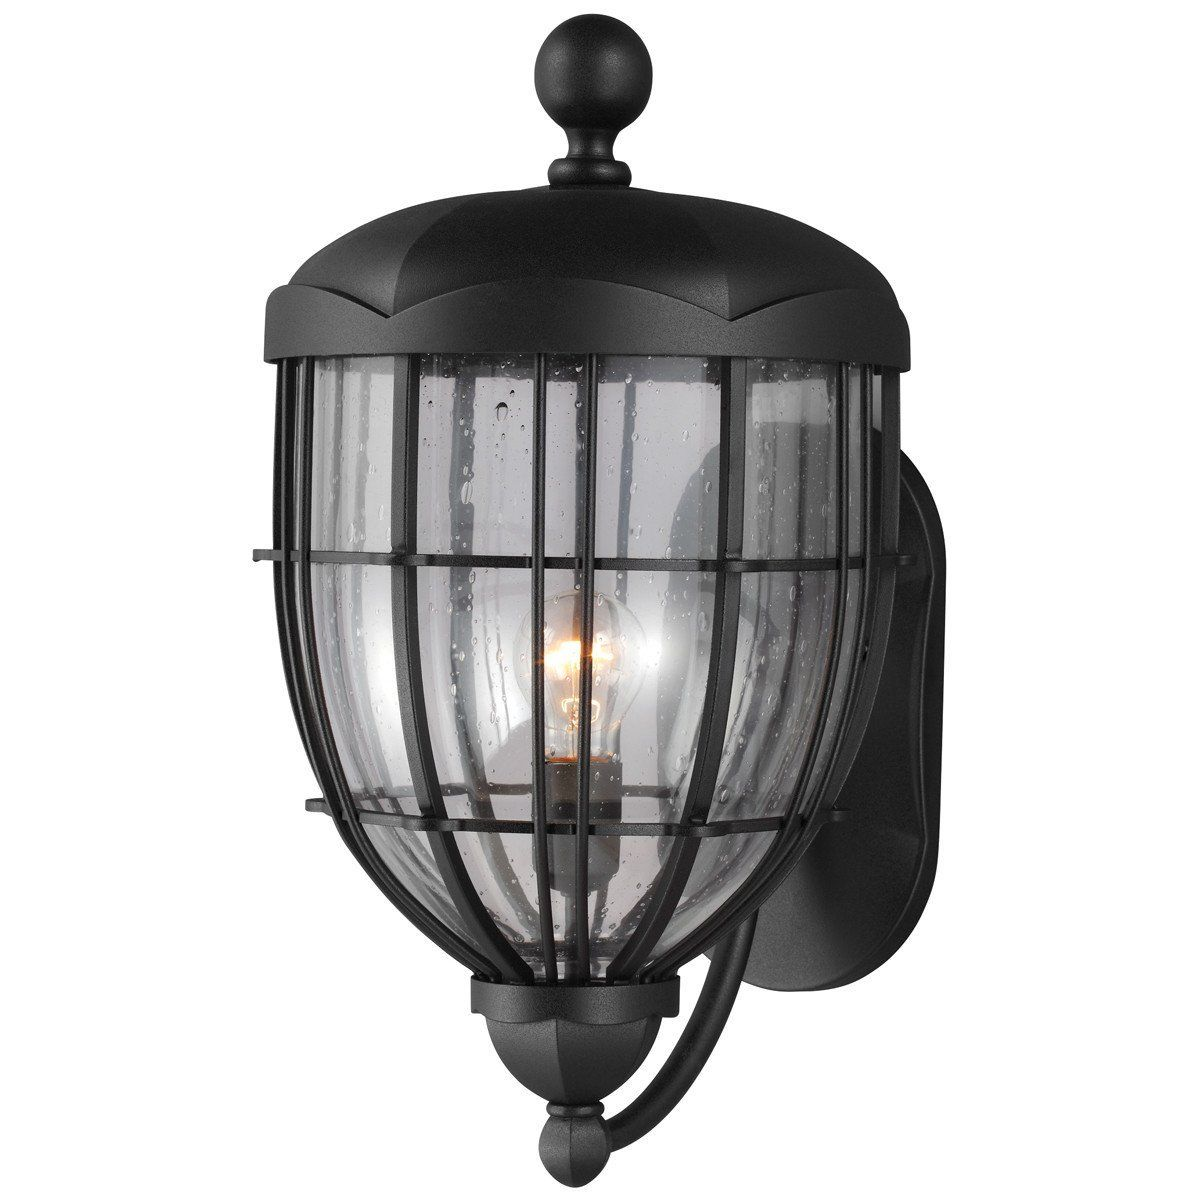 Feiss river north light outdoor lantern products pinterest